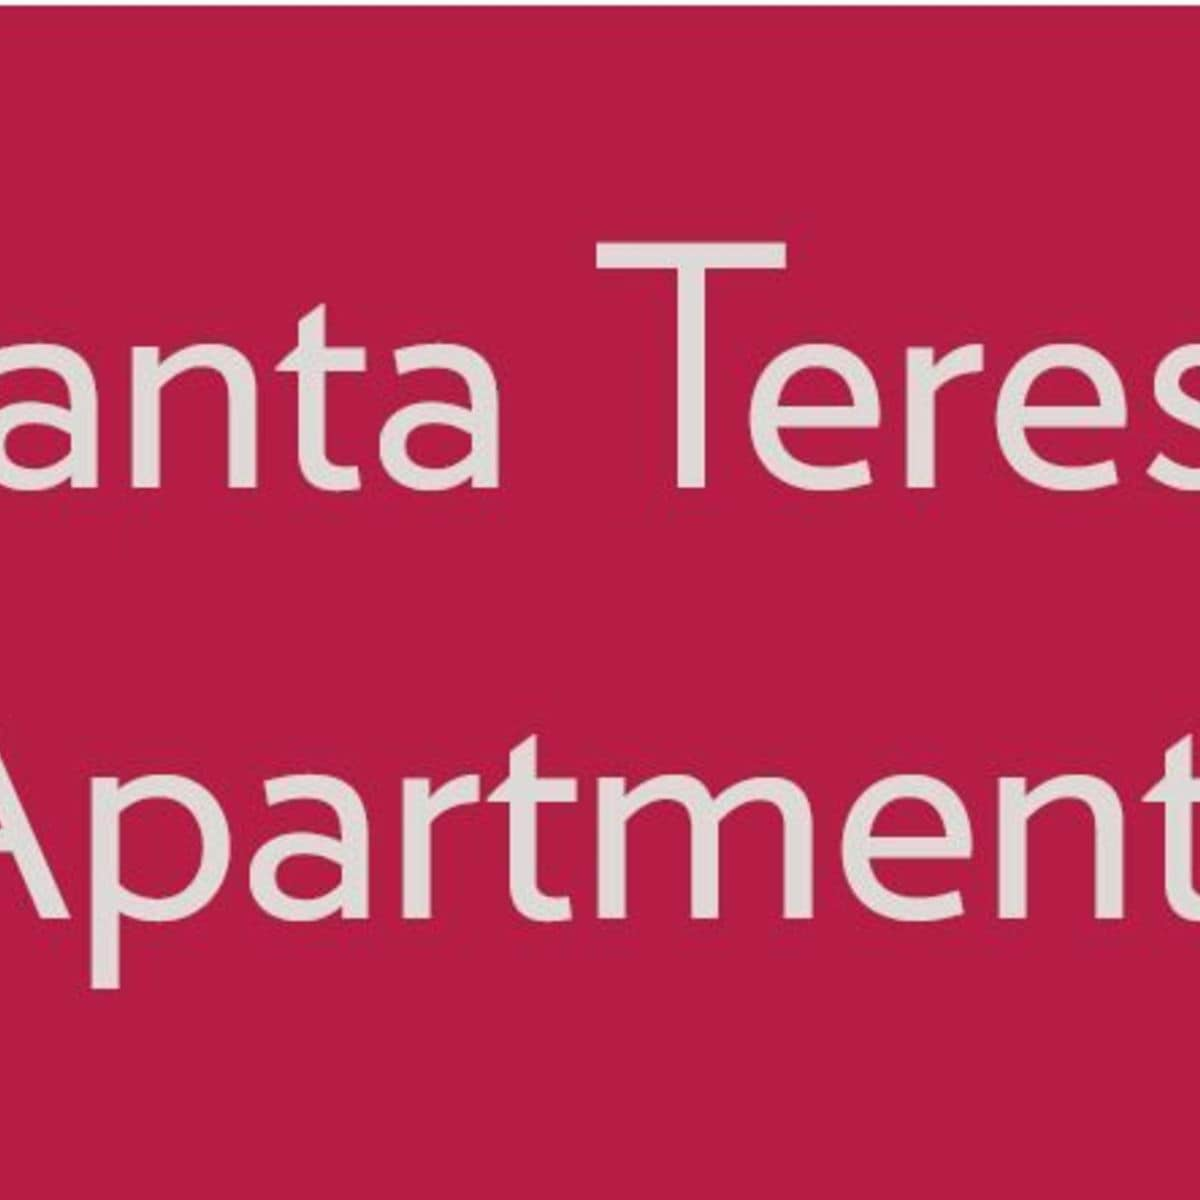 Santa Teresa Apartments: Santa Teresa Apartments For Rent In San Jose, CA